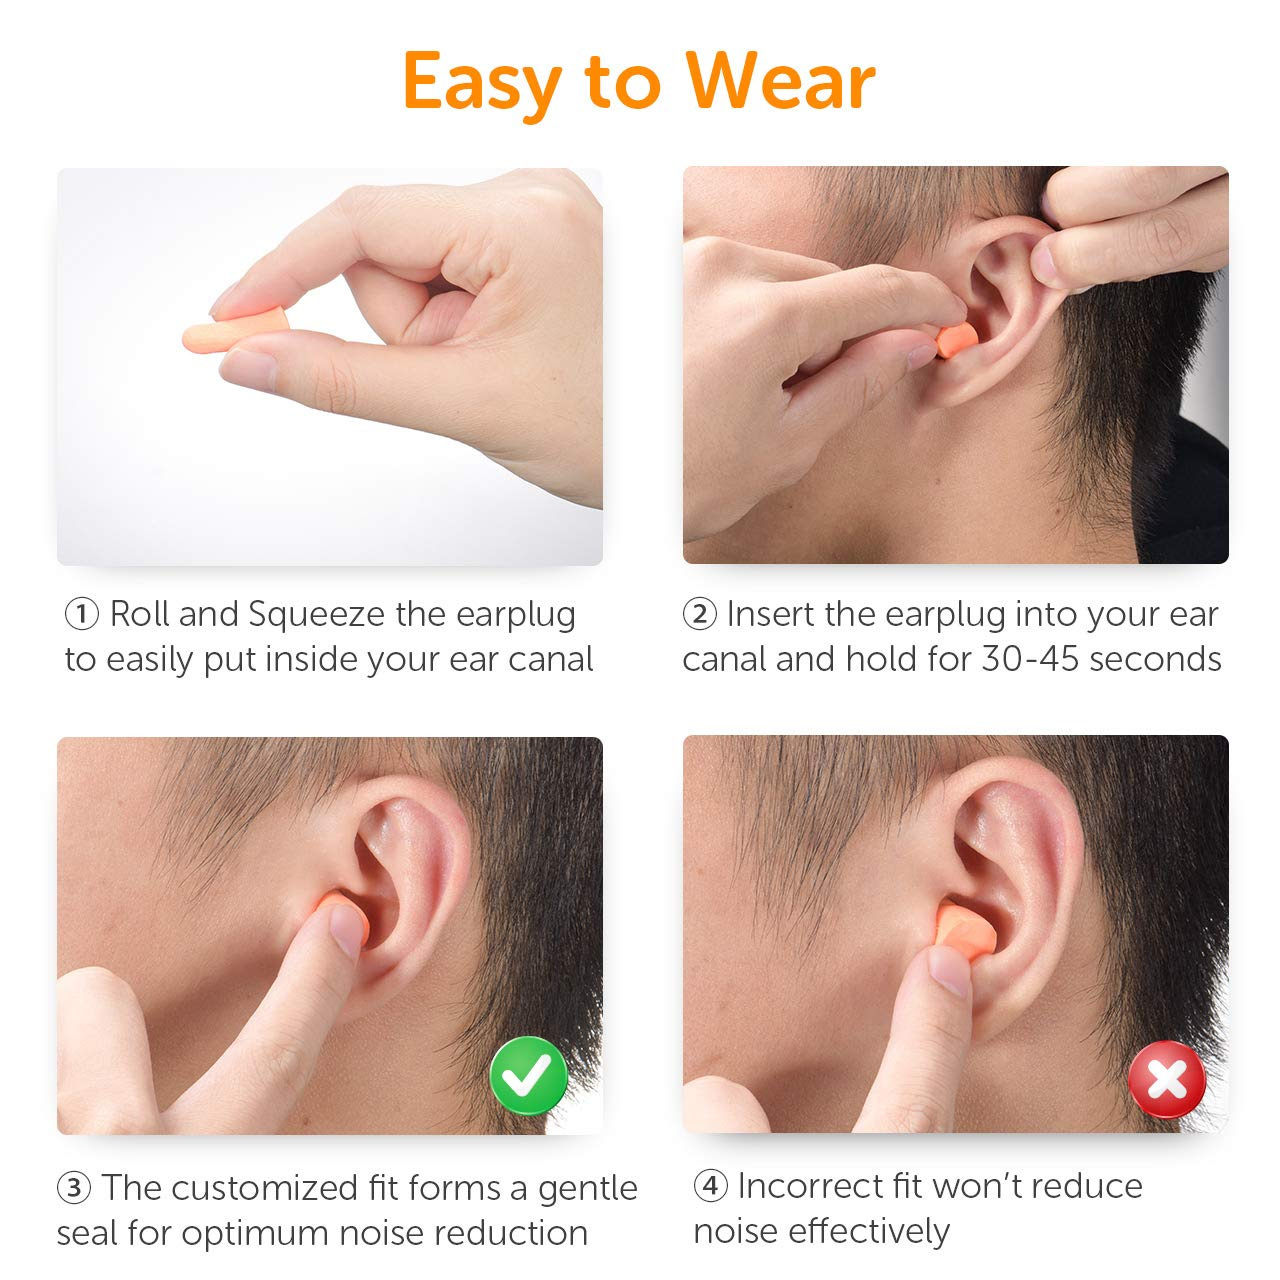 Mpow 072 Earplugs 60 Pairs Individually Wrapped, 32dB NRR Soft Ear Plug, Noise Reduction For Hearing Protection, Sleeping, Shooting, Traveling, Working, Constructing by Mpow (Image #5)